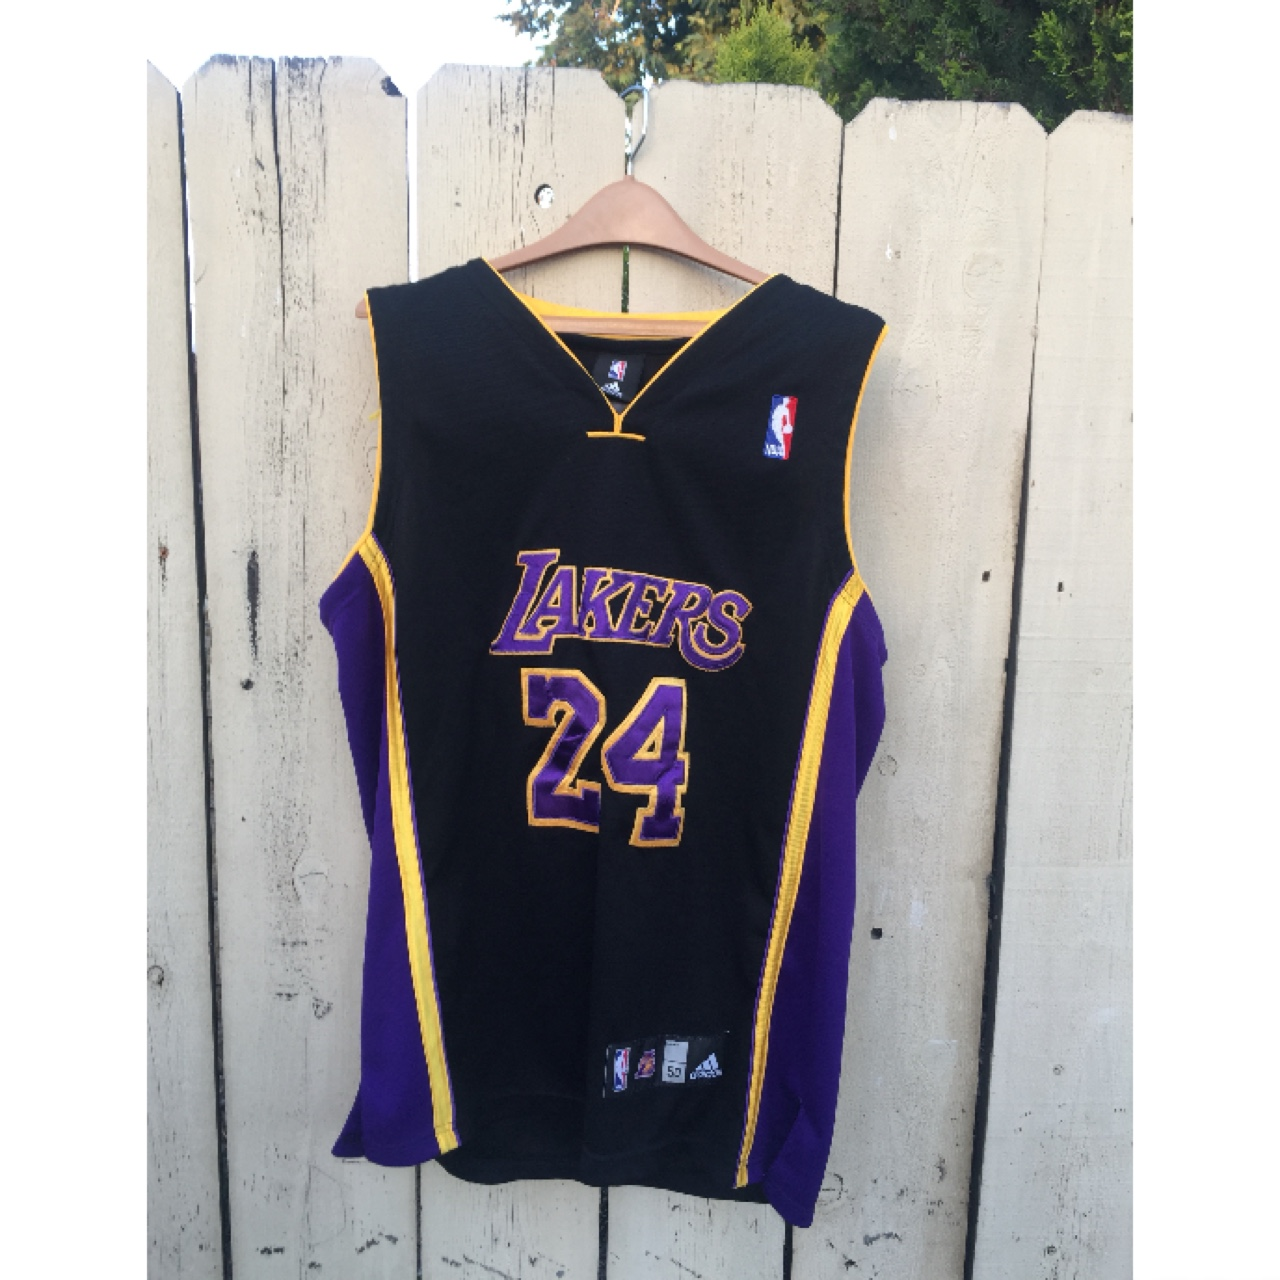 separation shoes 0014a 88e16 Size 50 Lakers Kobe Bryant Jersey by Adidas. Show... - Depop